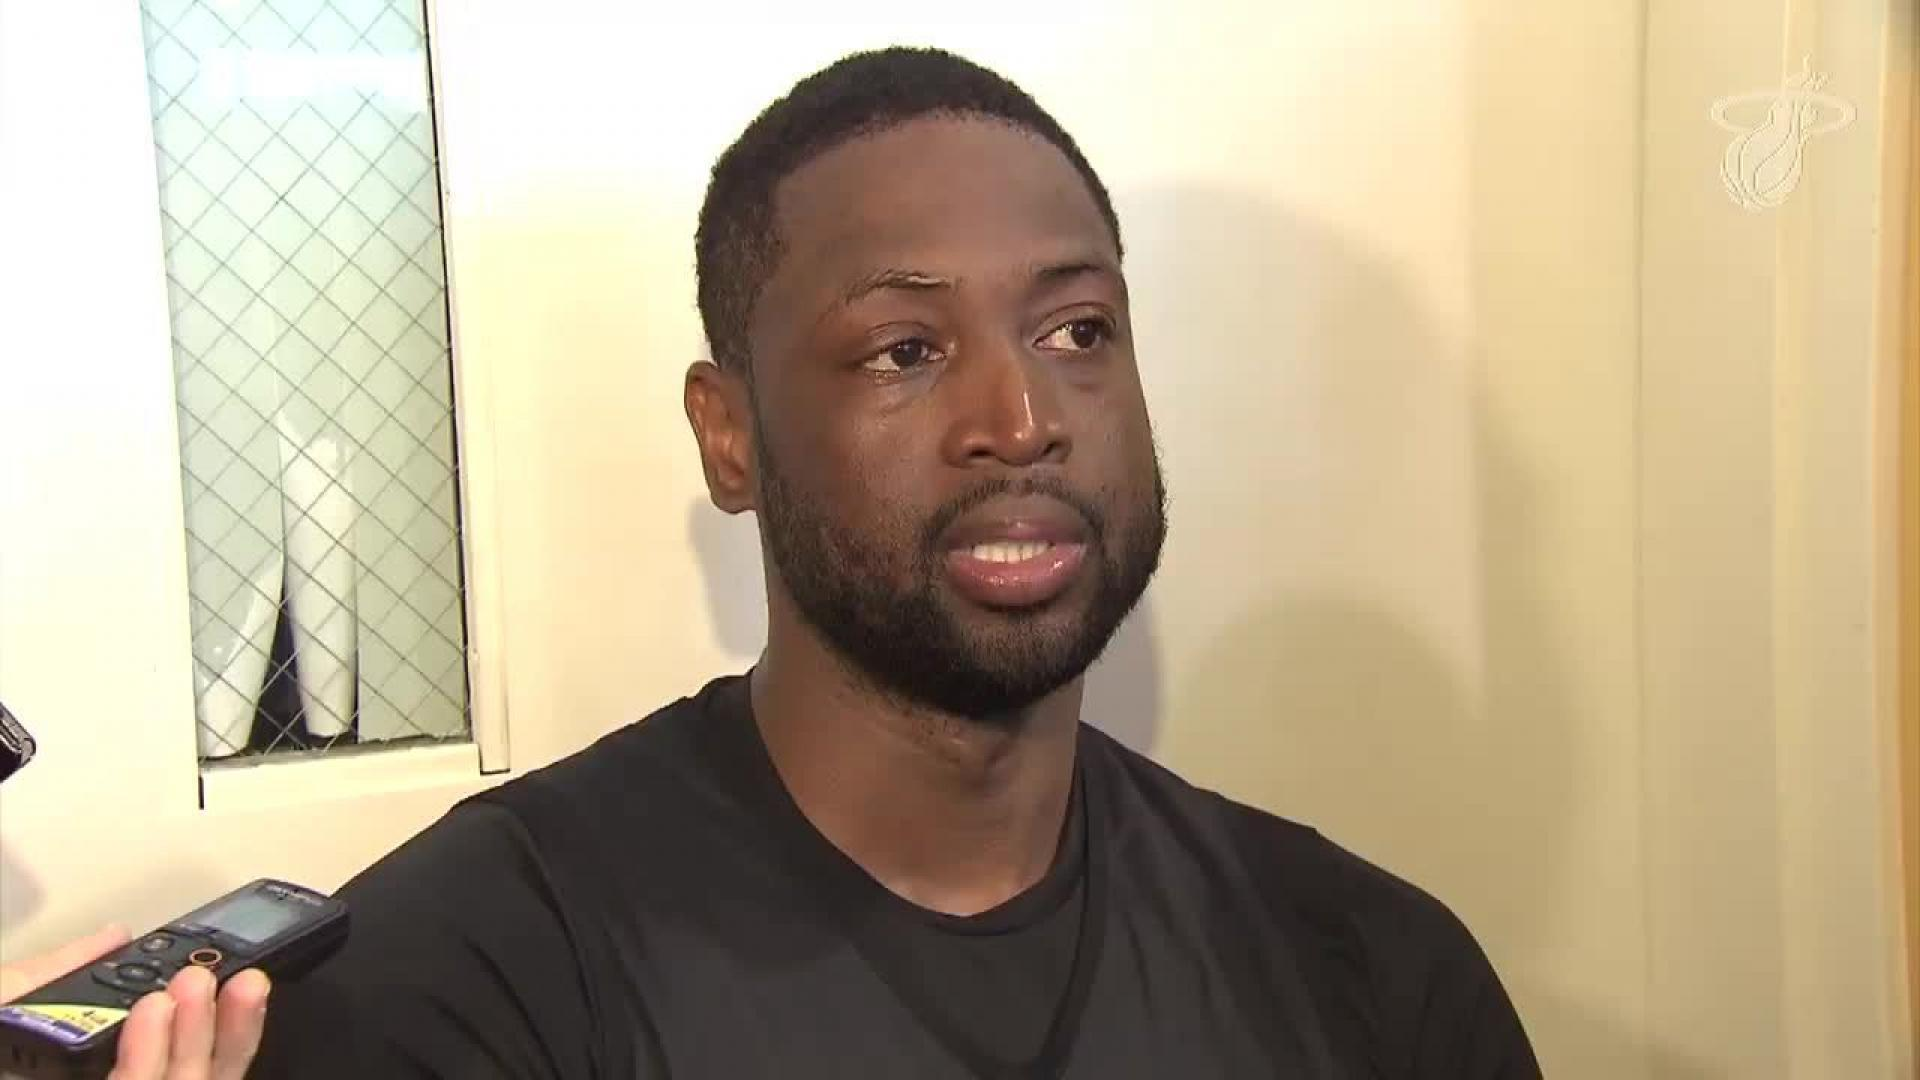 Dwyane Wade to Marjory Stoneman Douglas Students: We Salute and Support You